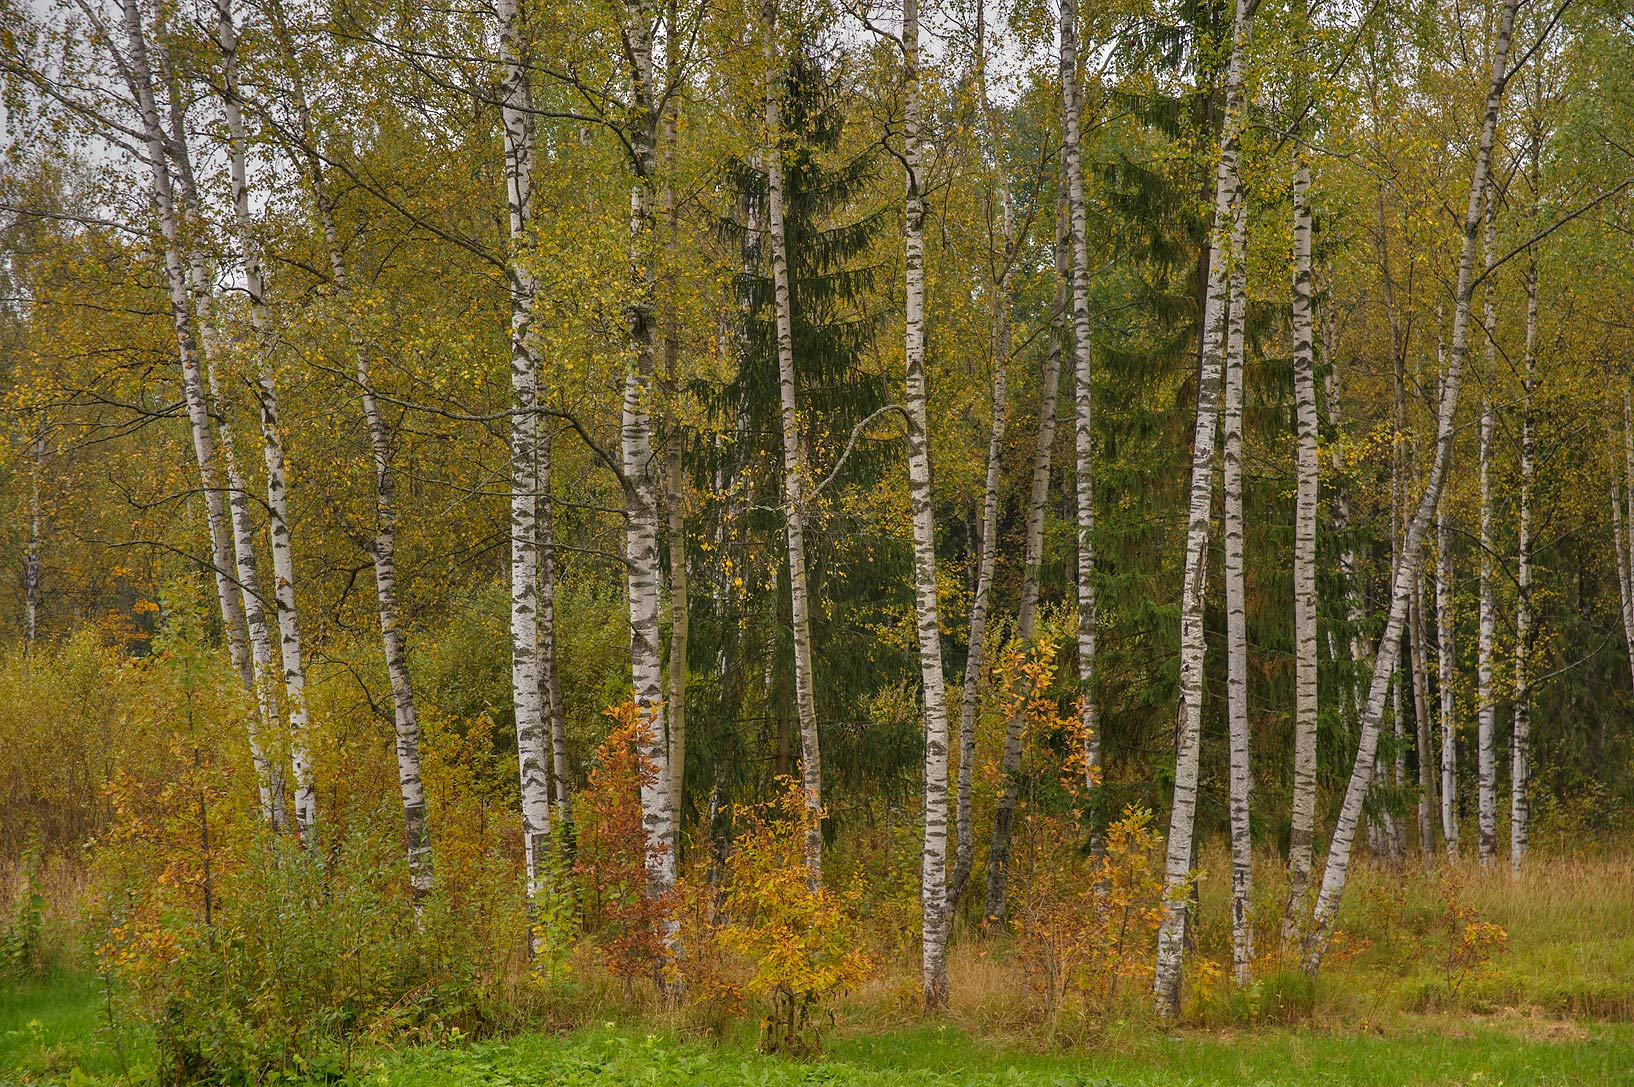 Birch stand near Lamsky Pond in Aleksandrovsky...Selo) near St.Petersburg, Russia